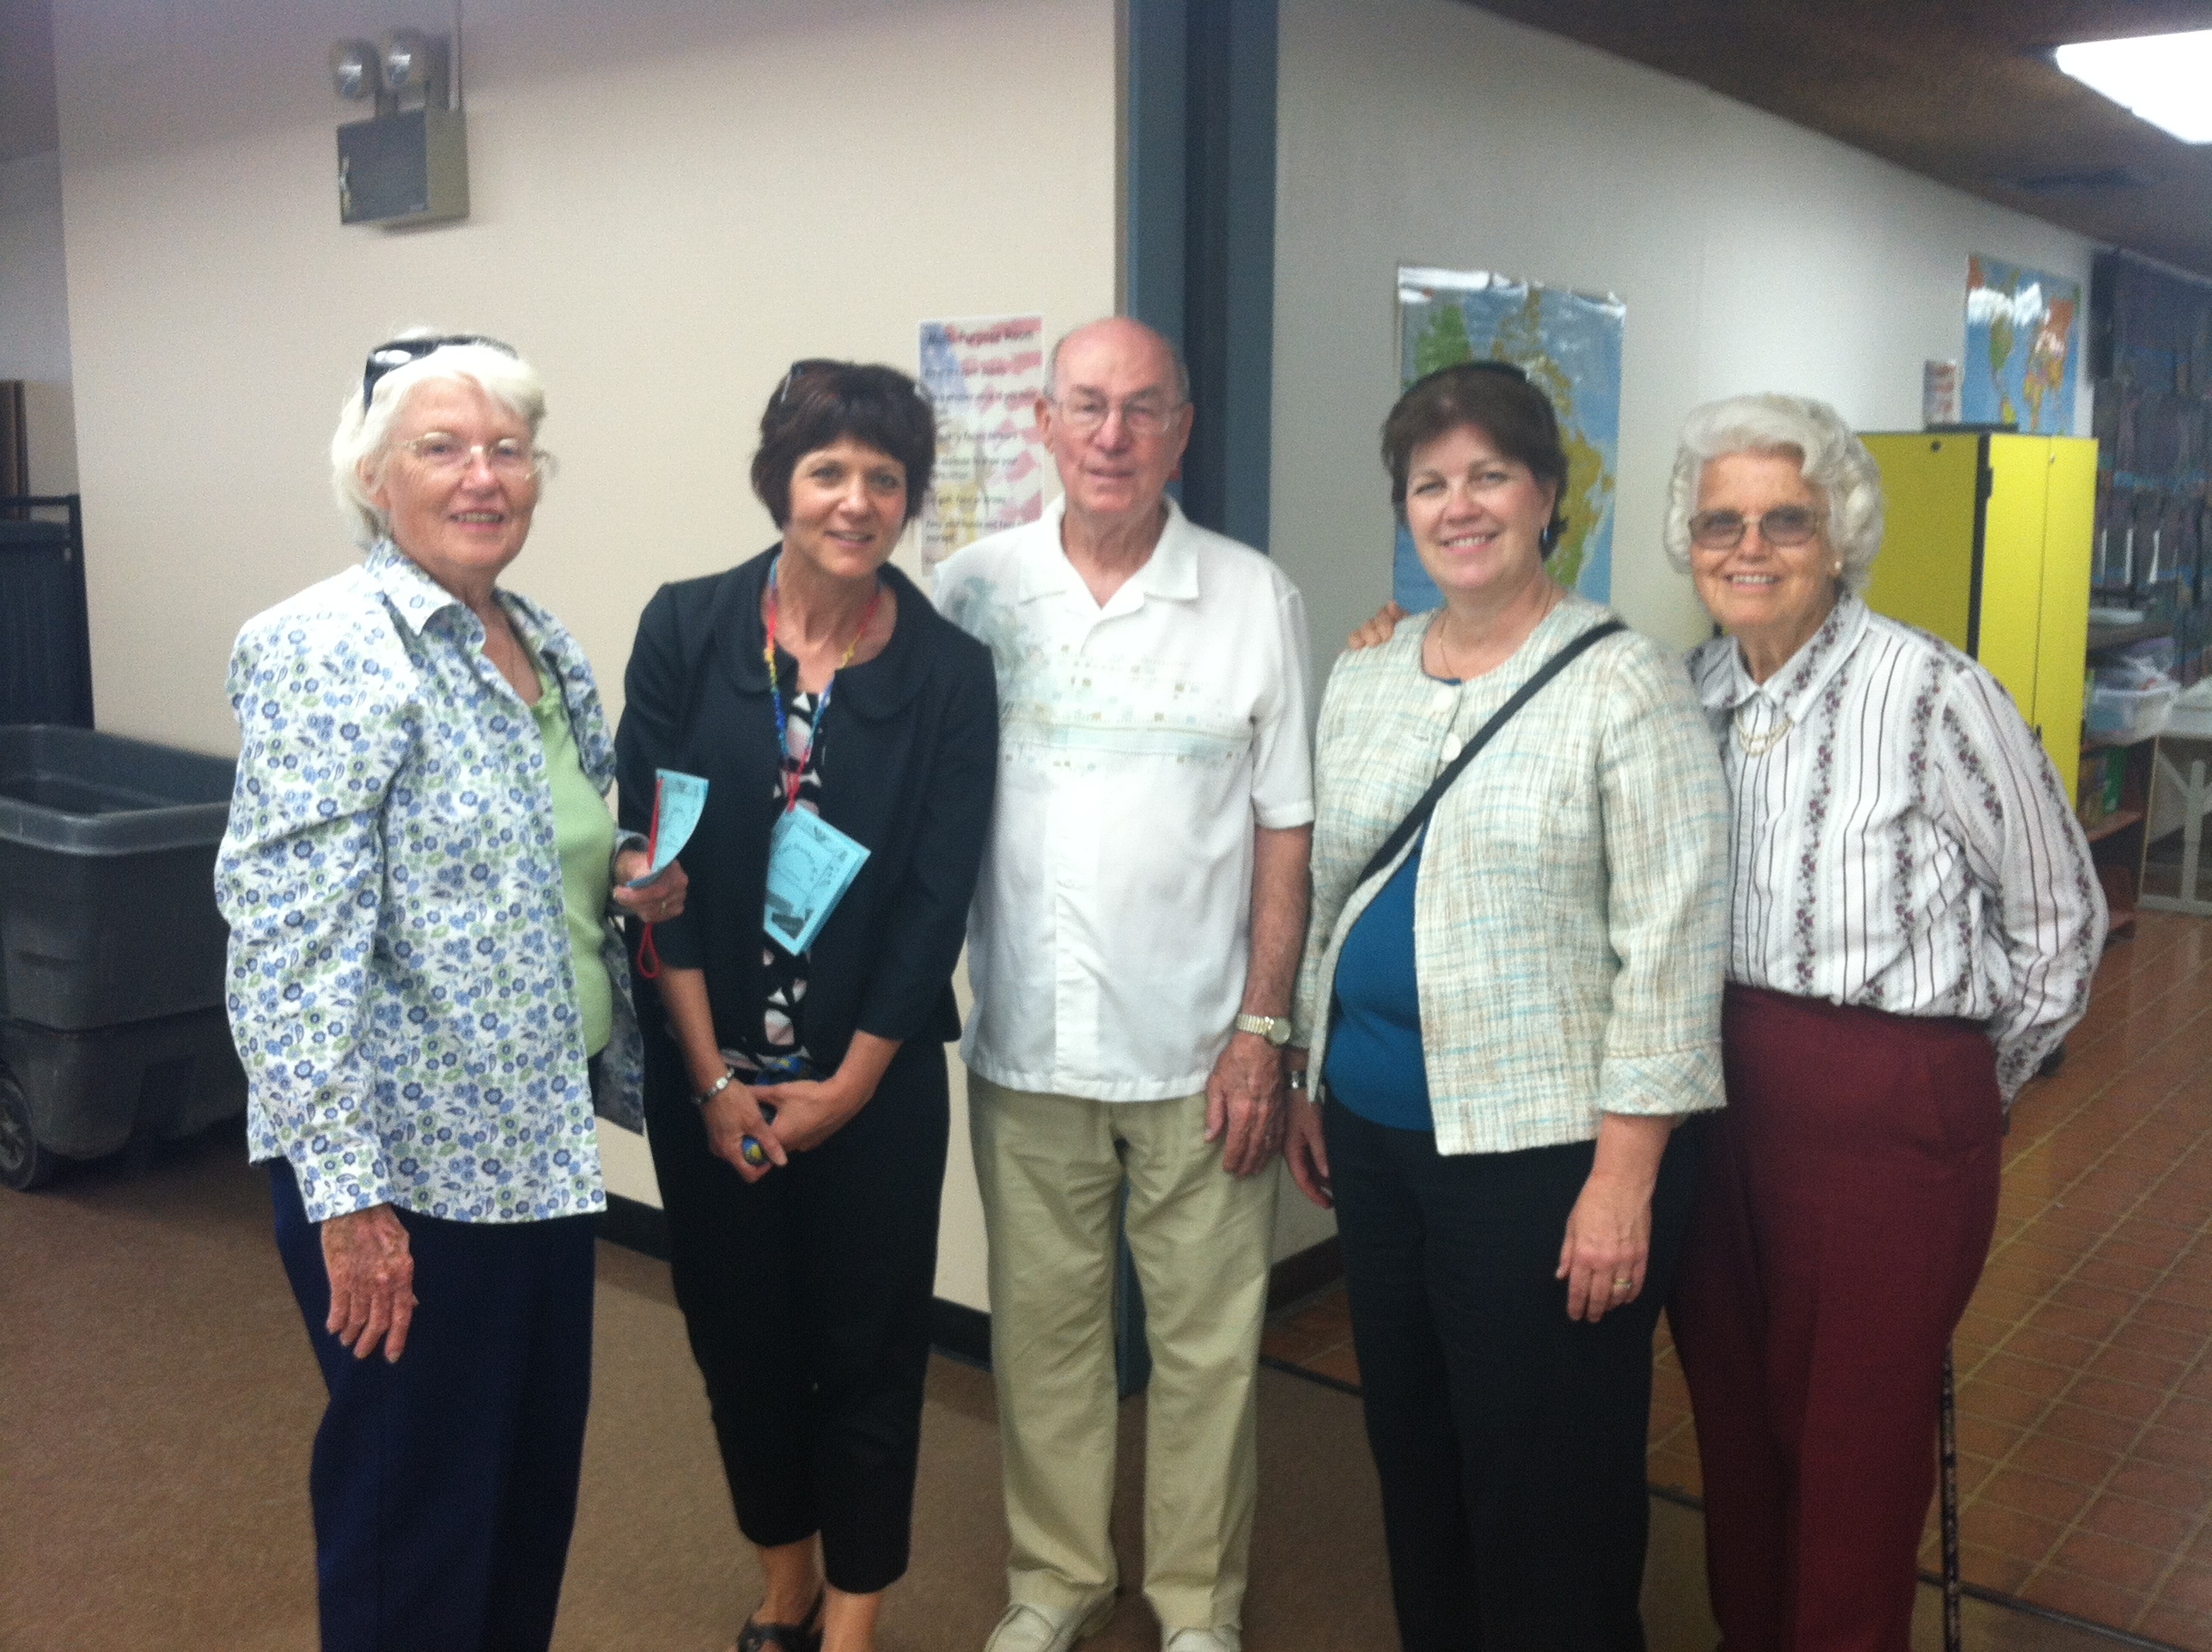 Carl Hankey's Family at Open House